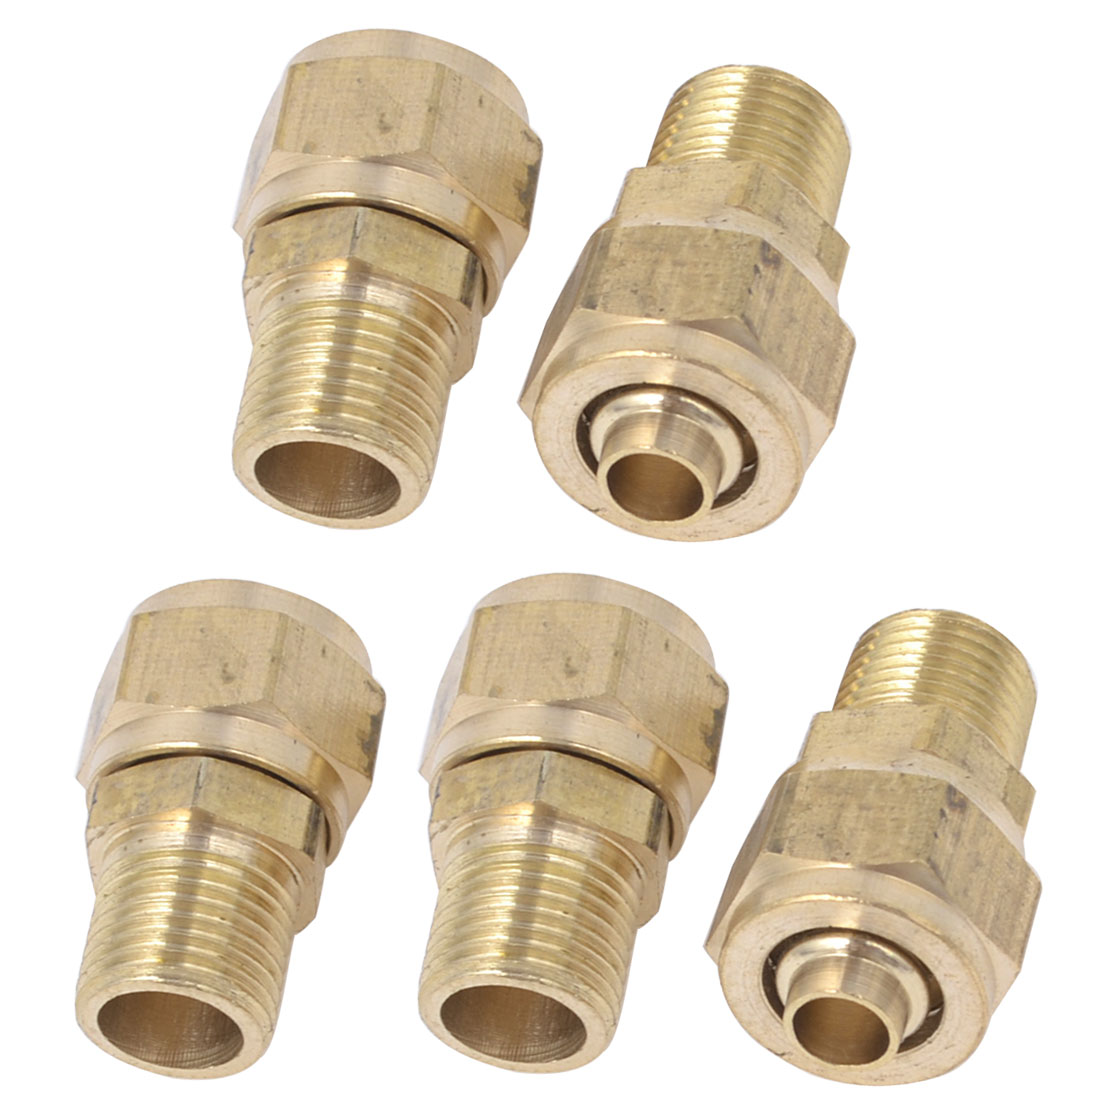 5 Pcs Metal Air Pneumatic Quick Socket Coupler Gold Tone for 8mm x 5mm Hose